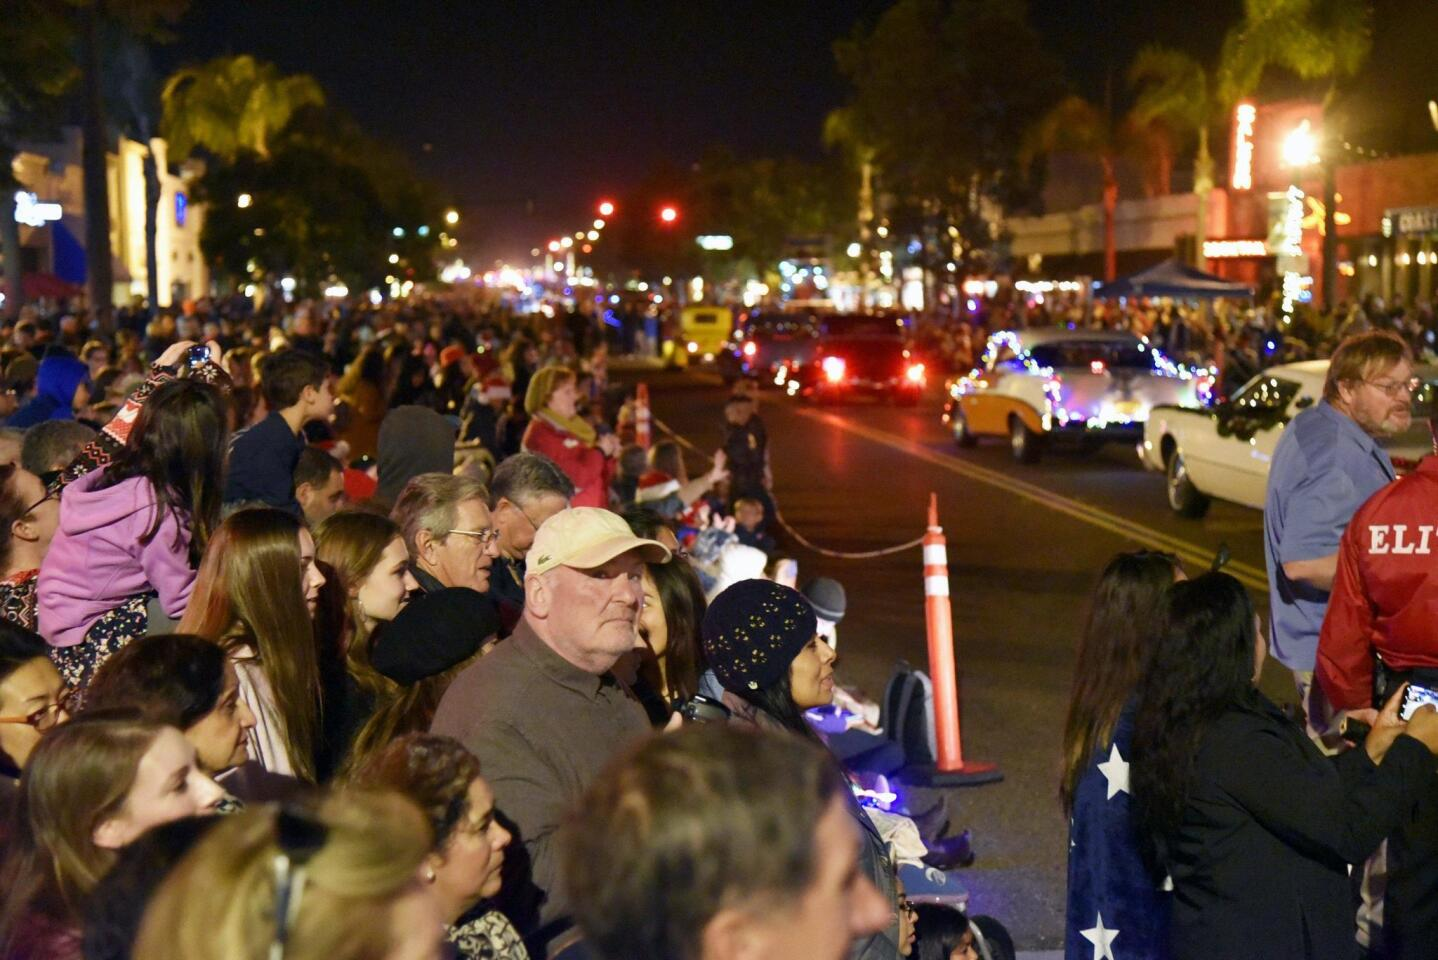 The parade continues to draw large crowds to downtown